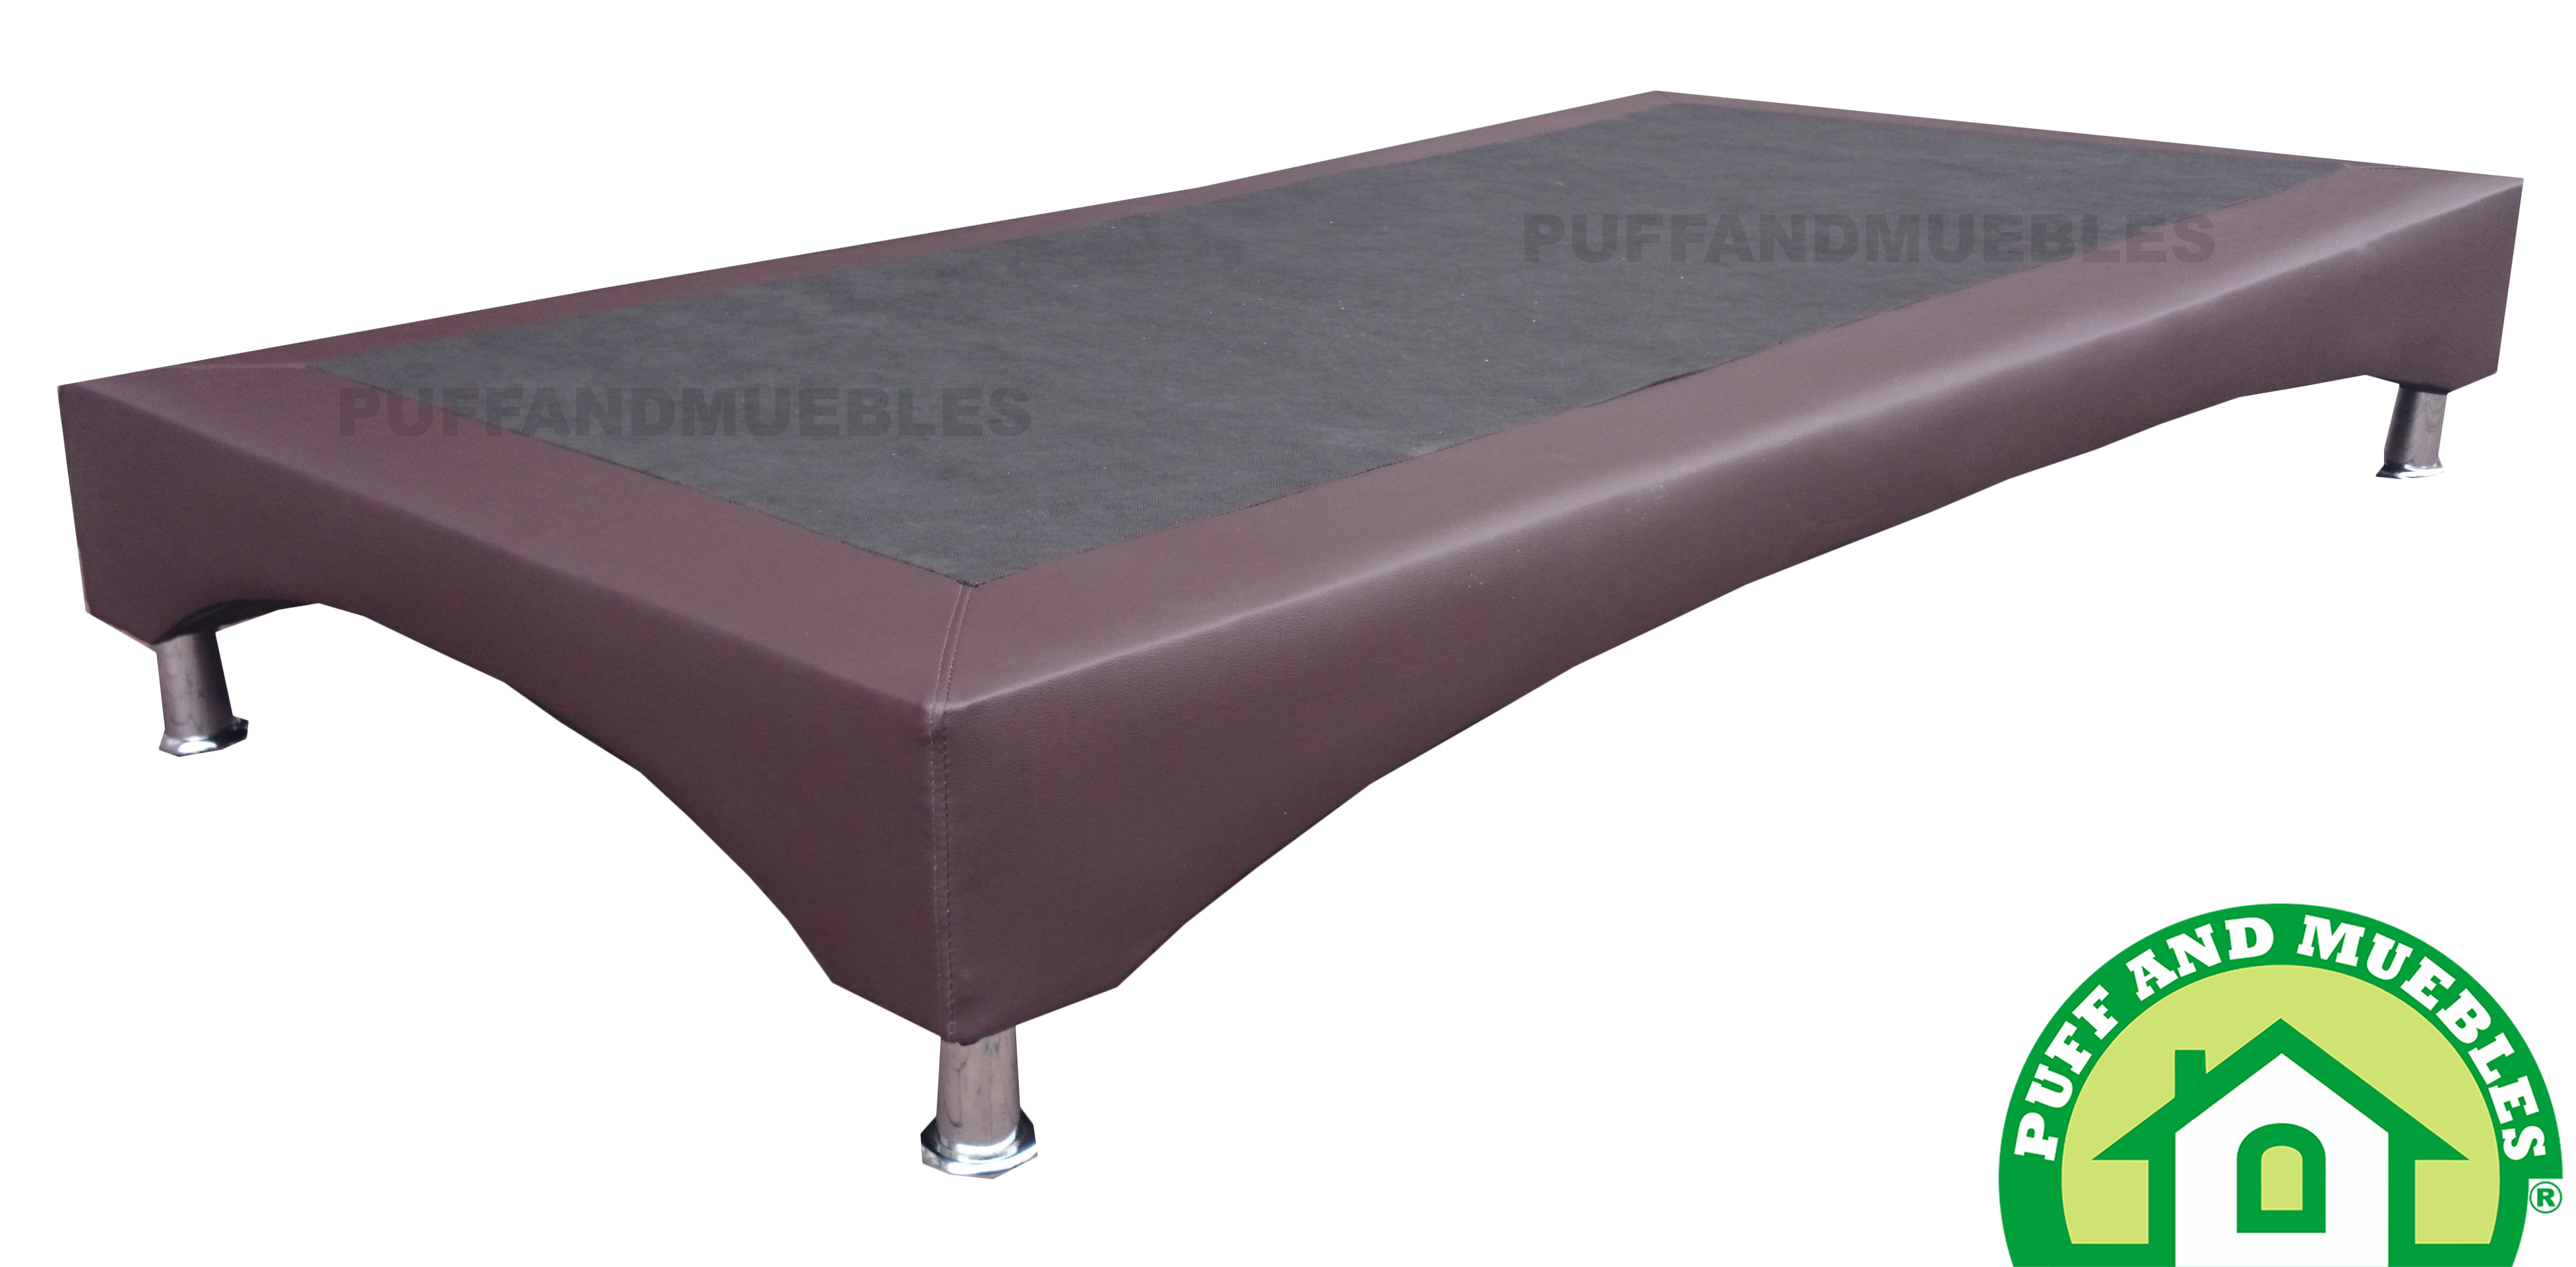 BASE CAMA CURVA